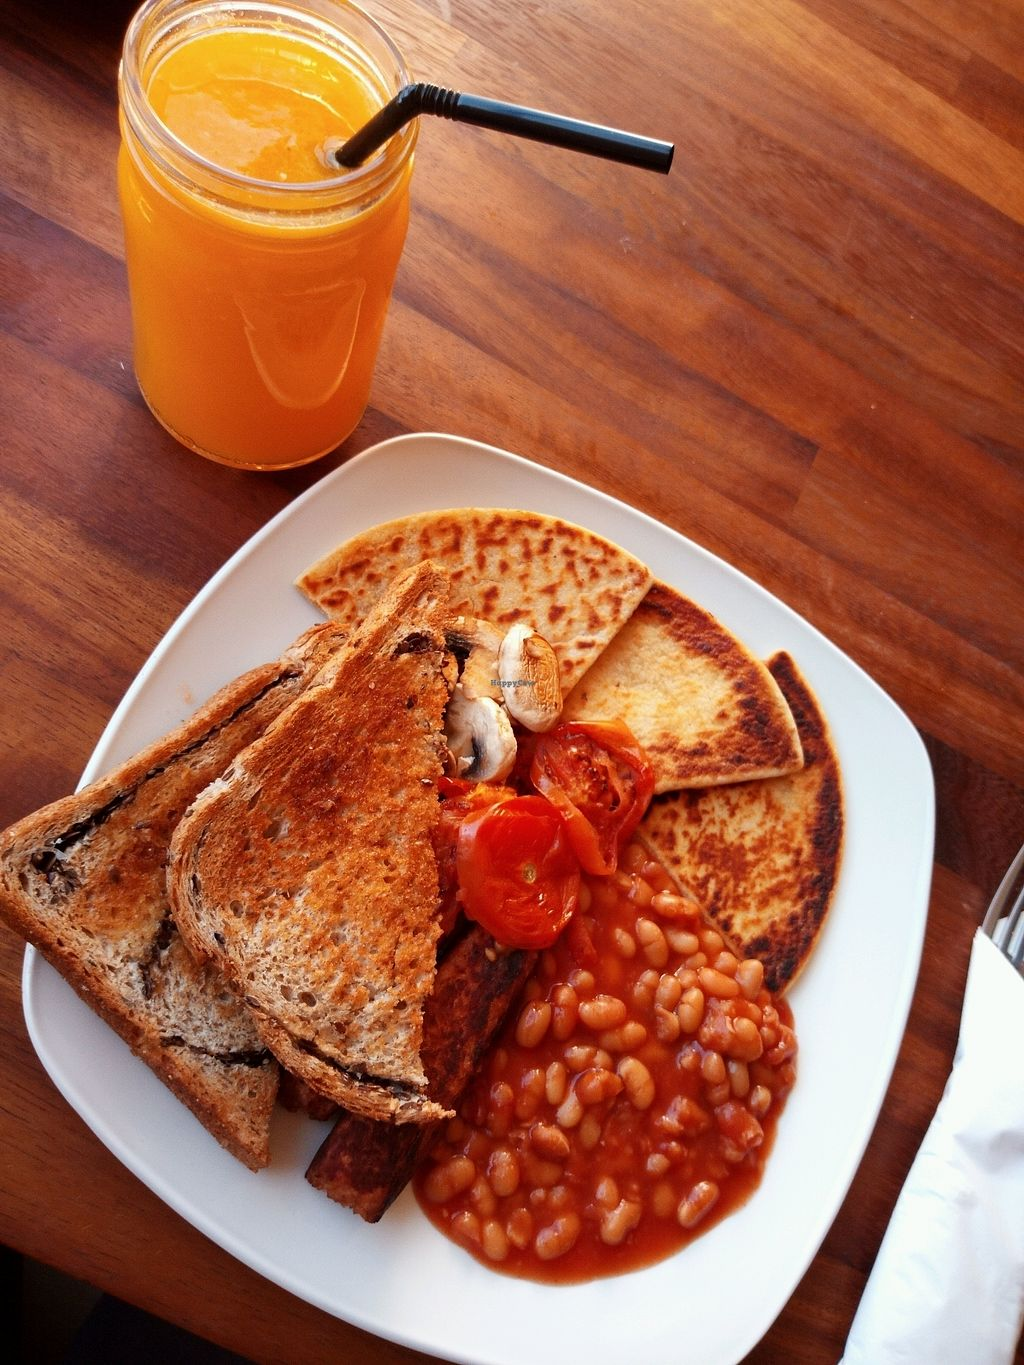 """Photo of Grassroots Cafe  by <a href=""""/members/profile/millivanilli"""">millivanilli</a> <br/>Vegan Breakfast <br/> October 29, 2017  - <a href='/contact/abuse/image/98559/319839'>Report</a>"""